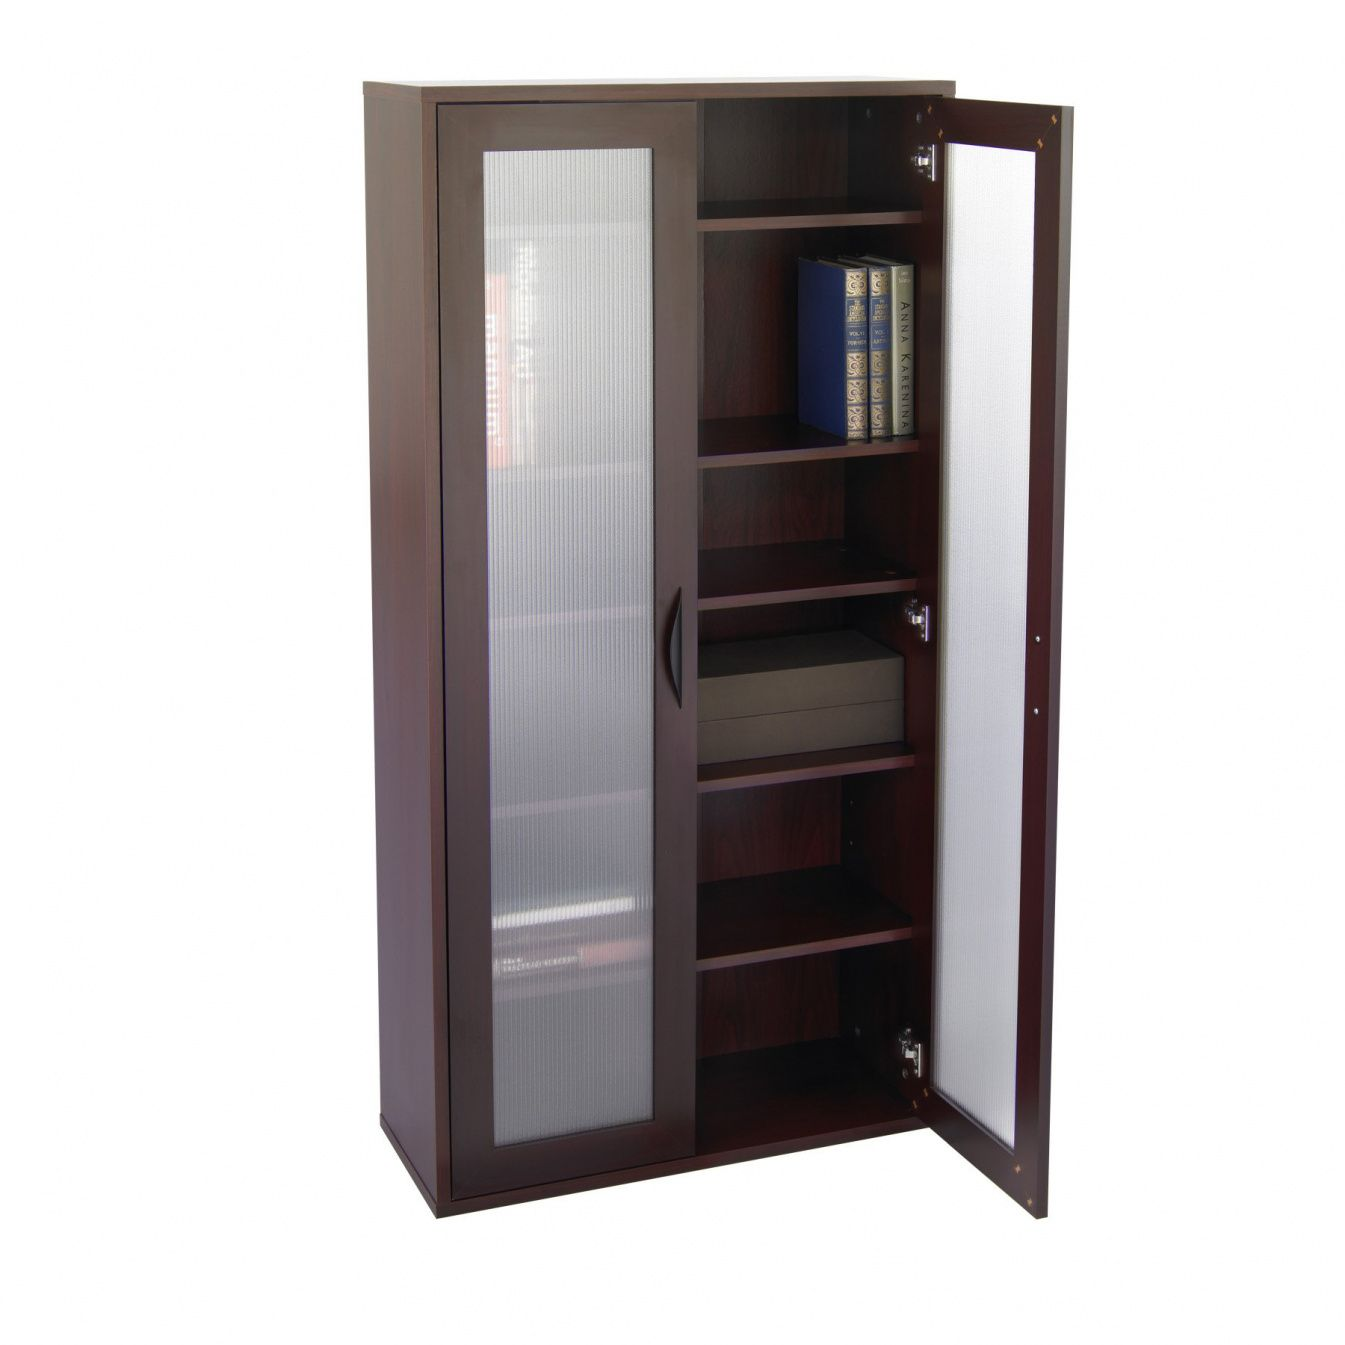 Gl Bookcase Doors Modern Home Office Furniture Check More At Http Fiveinchfloppy